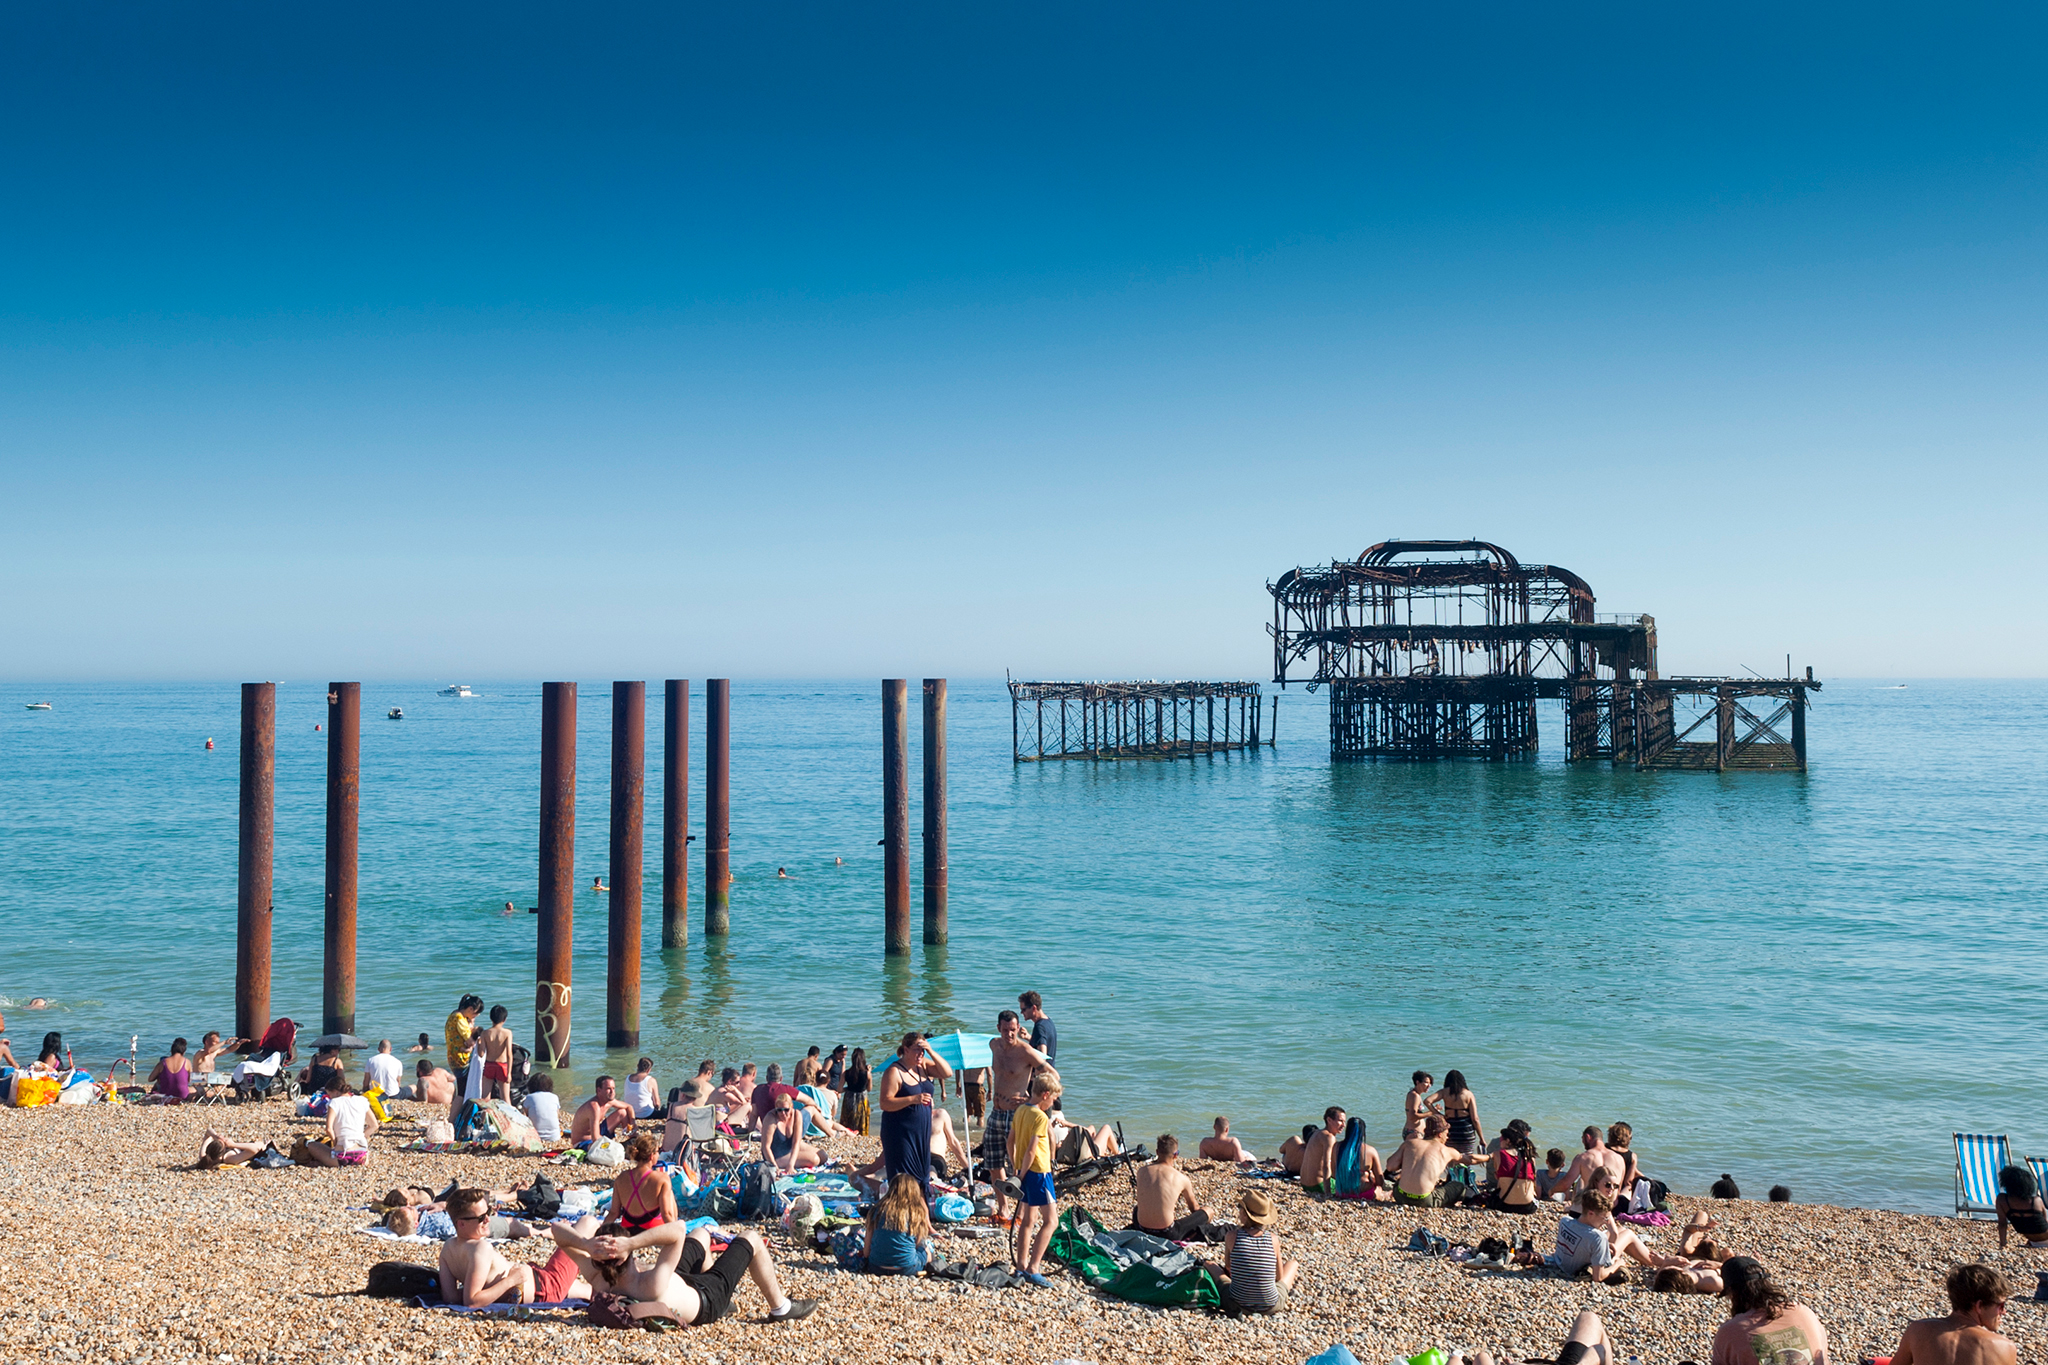 Alex_Bamford_Photography_Brighton_Horizon_bank_holiday.jpg